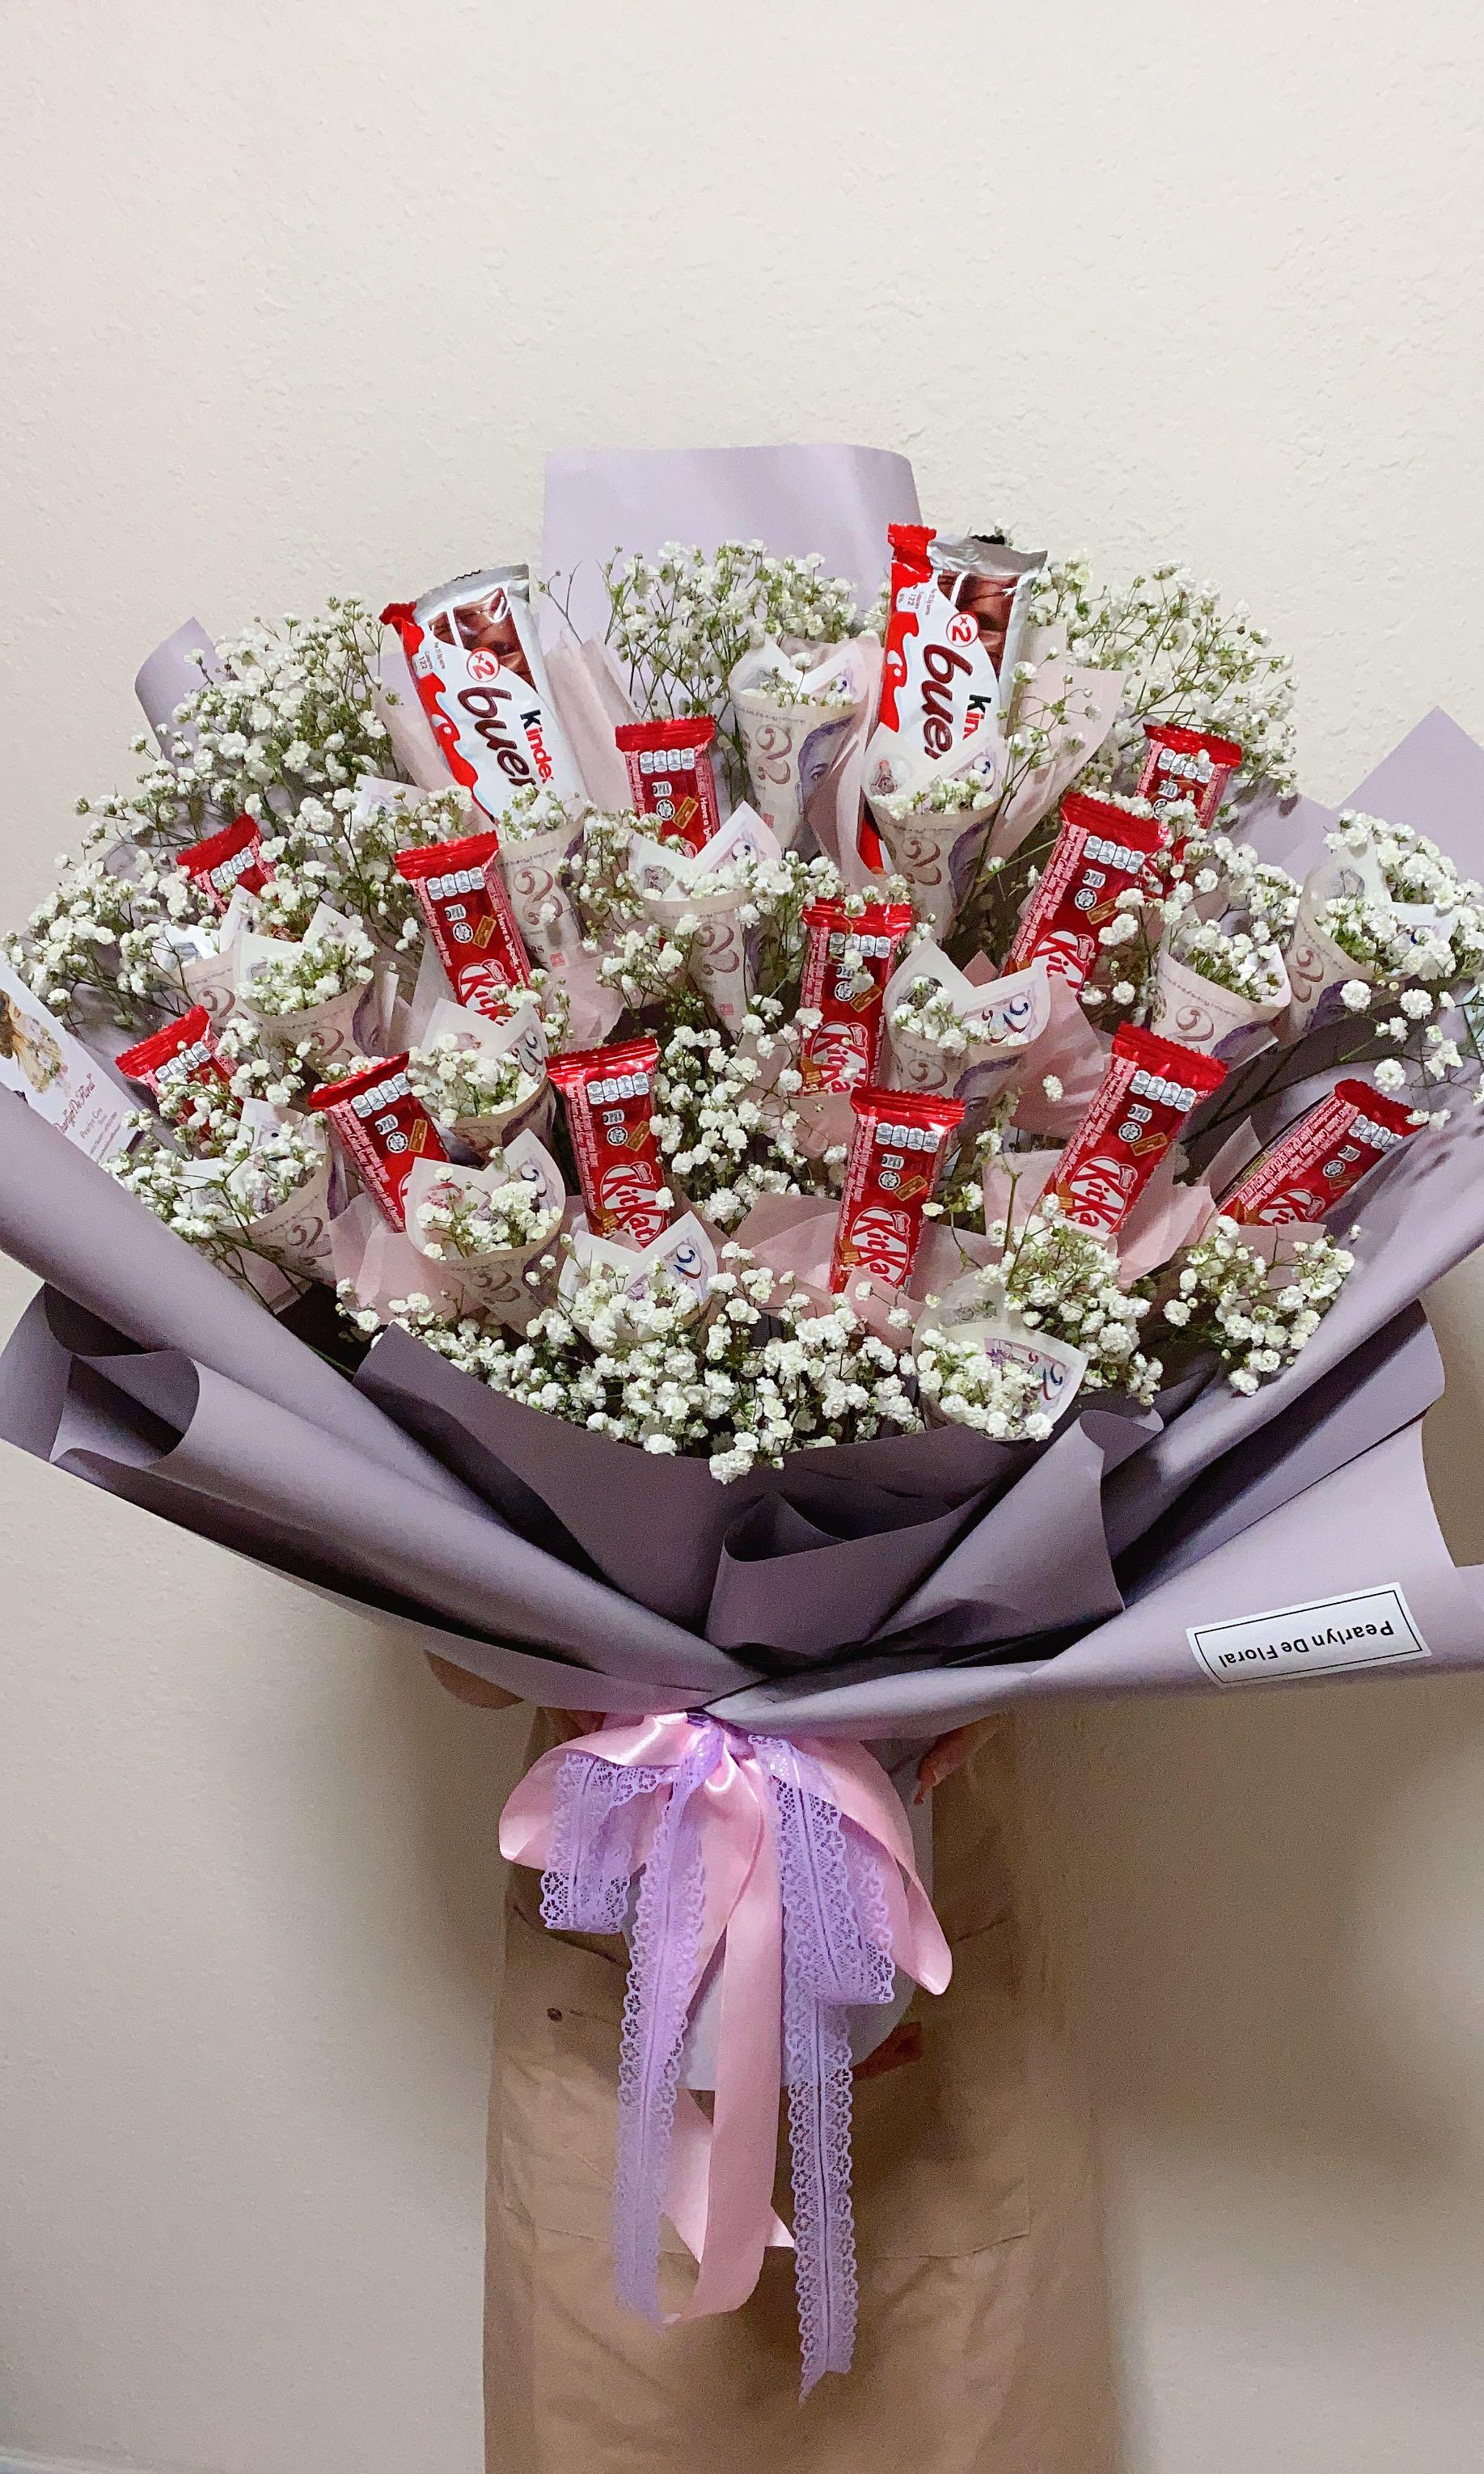 Chocolate Bouquet Chocolate With Money Bouquet Money Bouquet 巧克力和钱花束 Birthday Bouquet Birthday Gift Idea Gardening Flowers Bouquets On Carousell